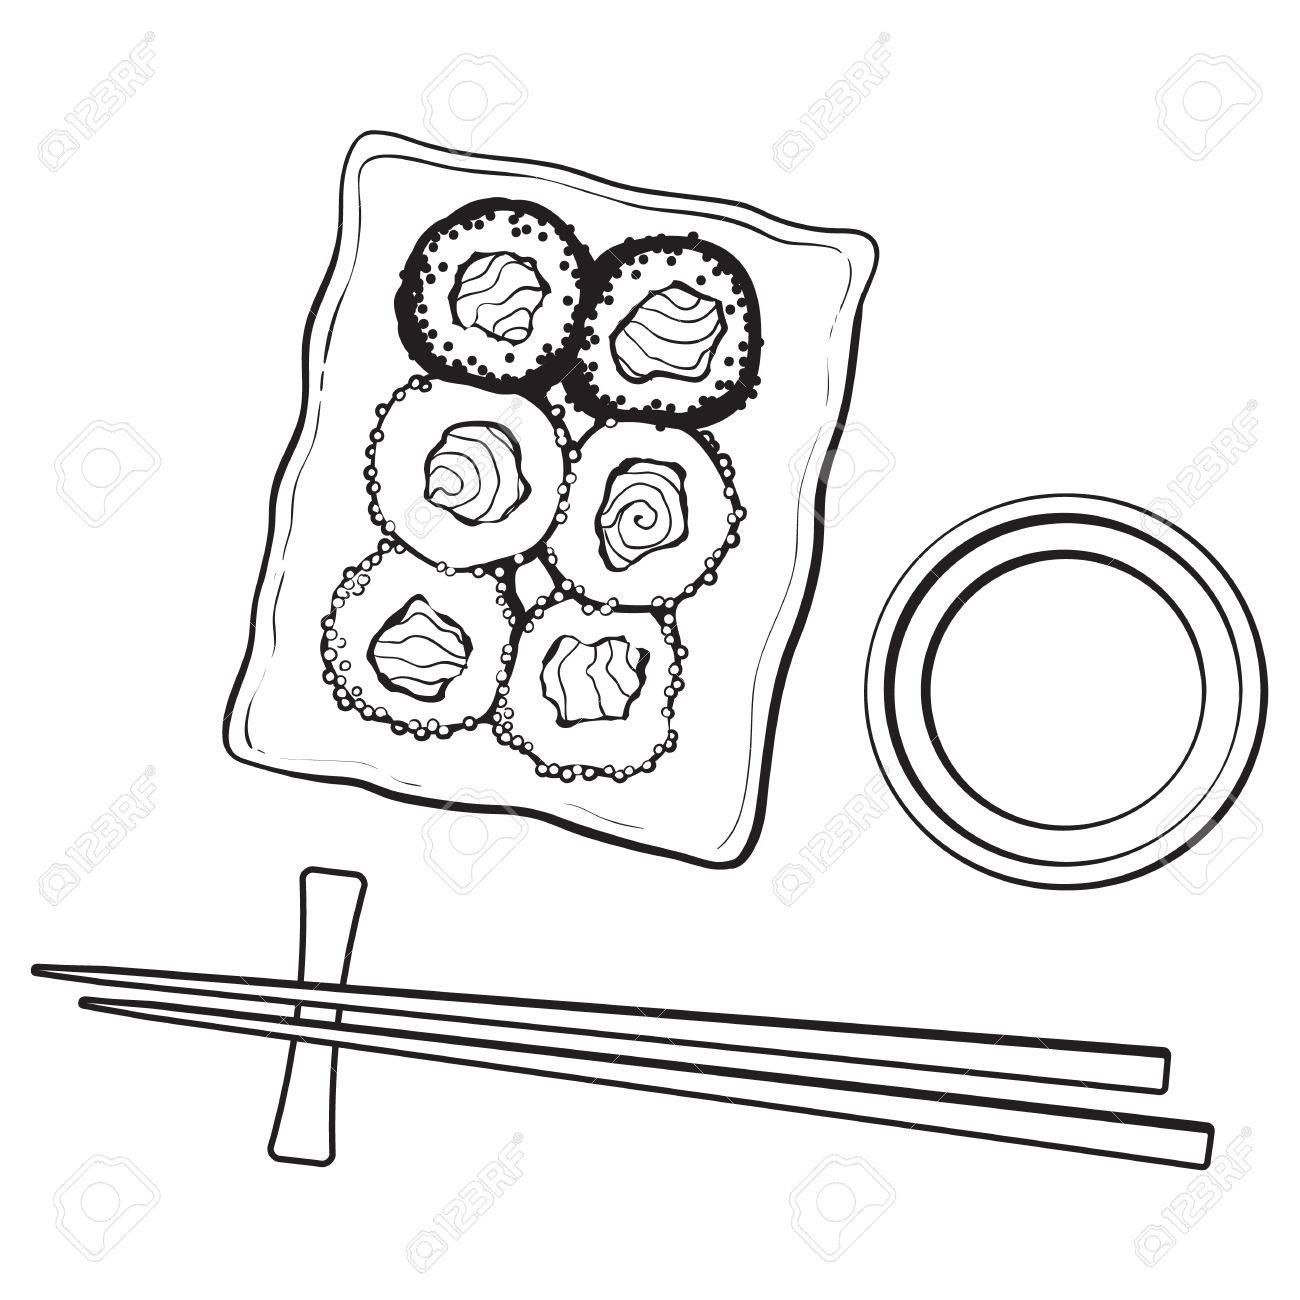 1300x1300 Plate Of Japanese Sushi, Rolls, Chosticks And Soy Sauce Bowl